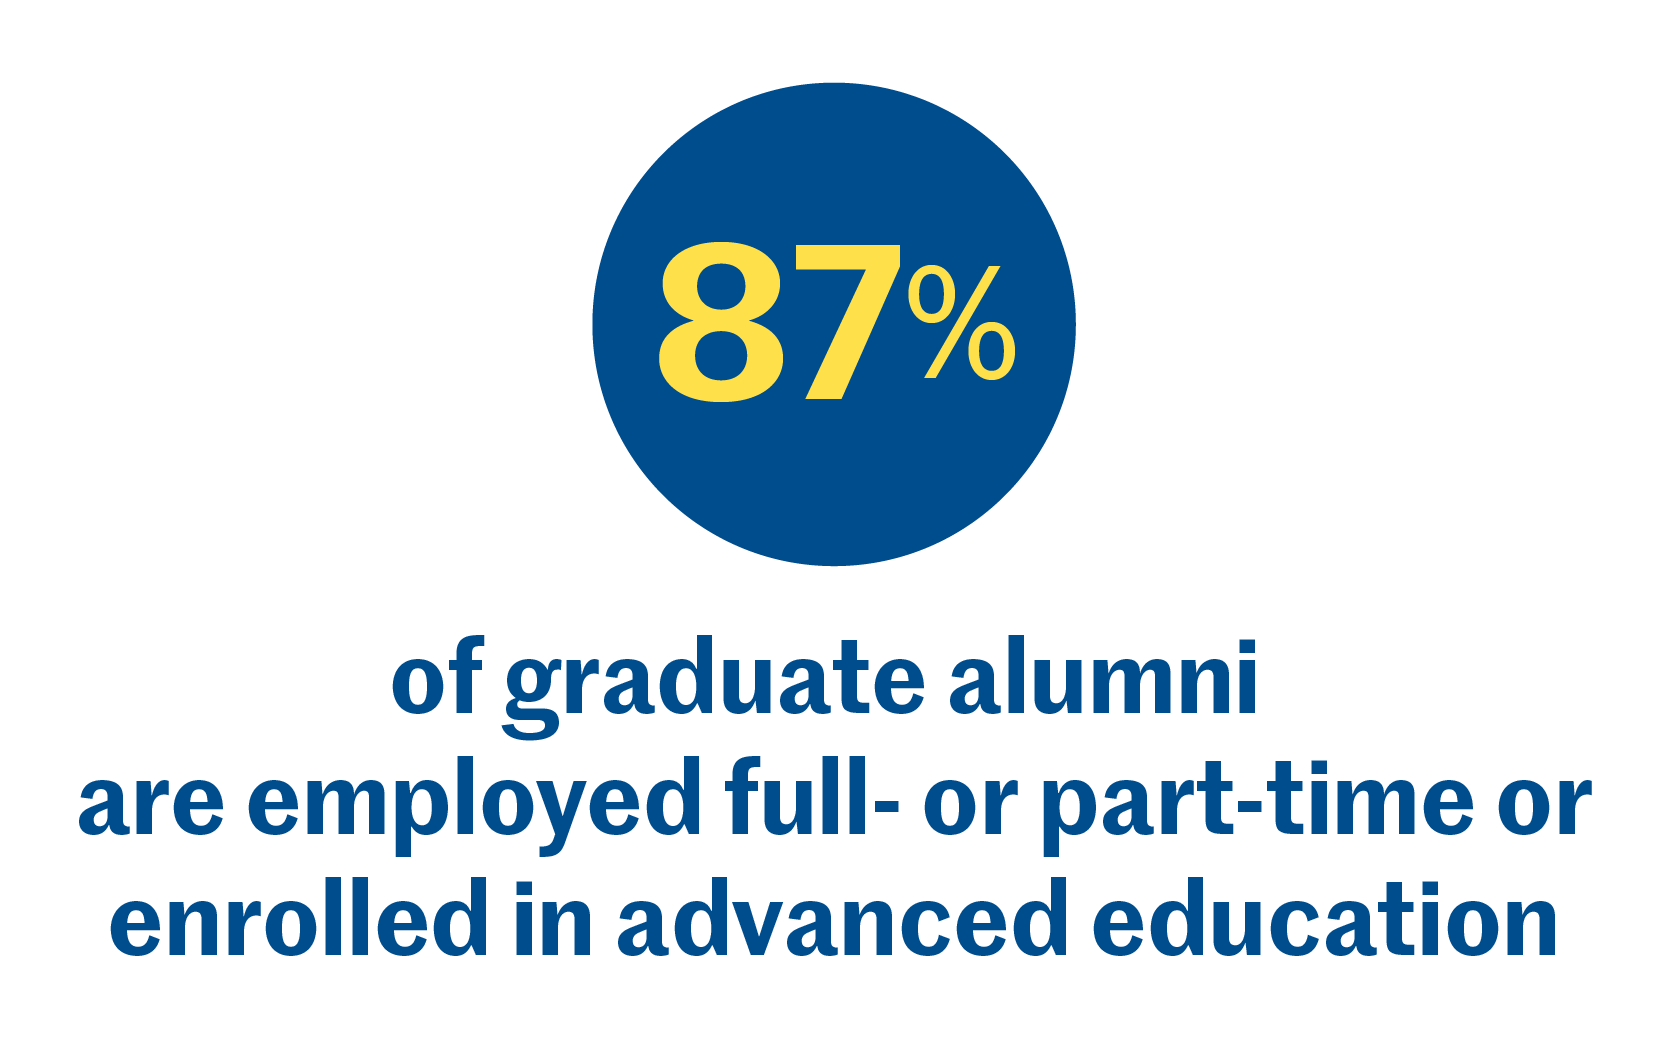 87% of graduate alumni are employed full- or part-time or enrolled in advanced education